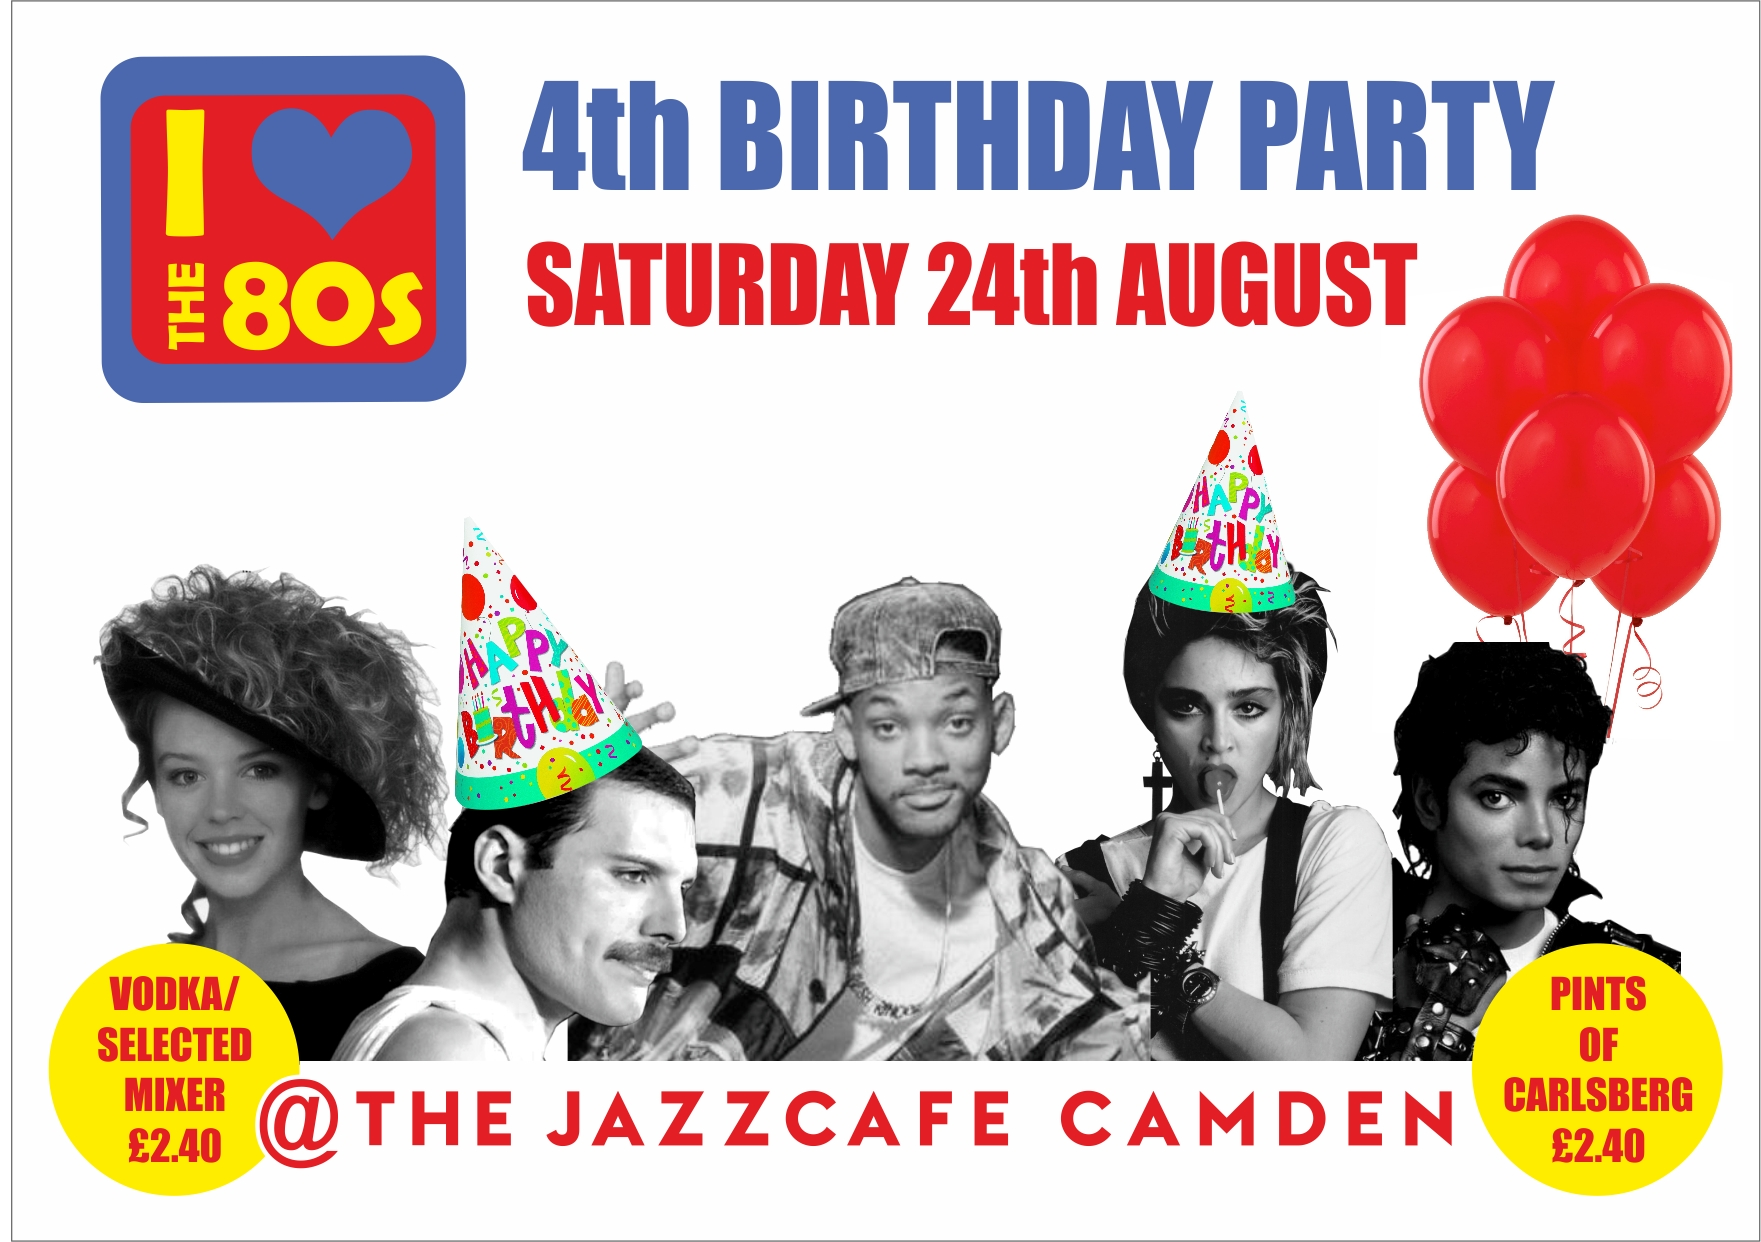 i love the s parties in london page  and if you love your 90s we have our regular bank holiday party at barfly camden on sunday 25th no work on monday woooop